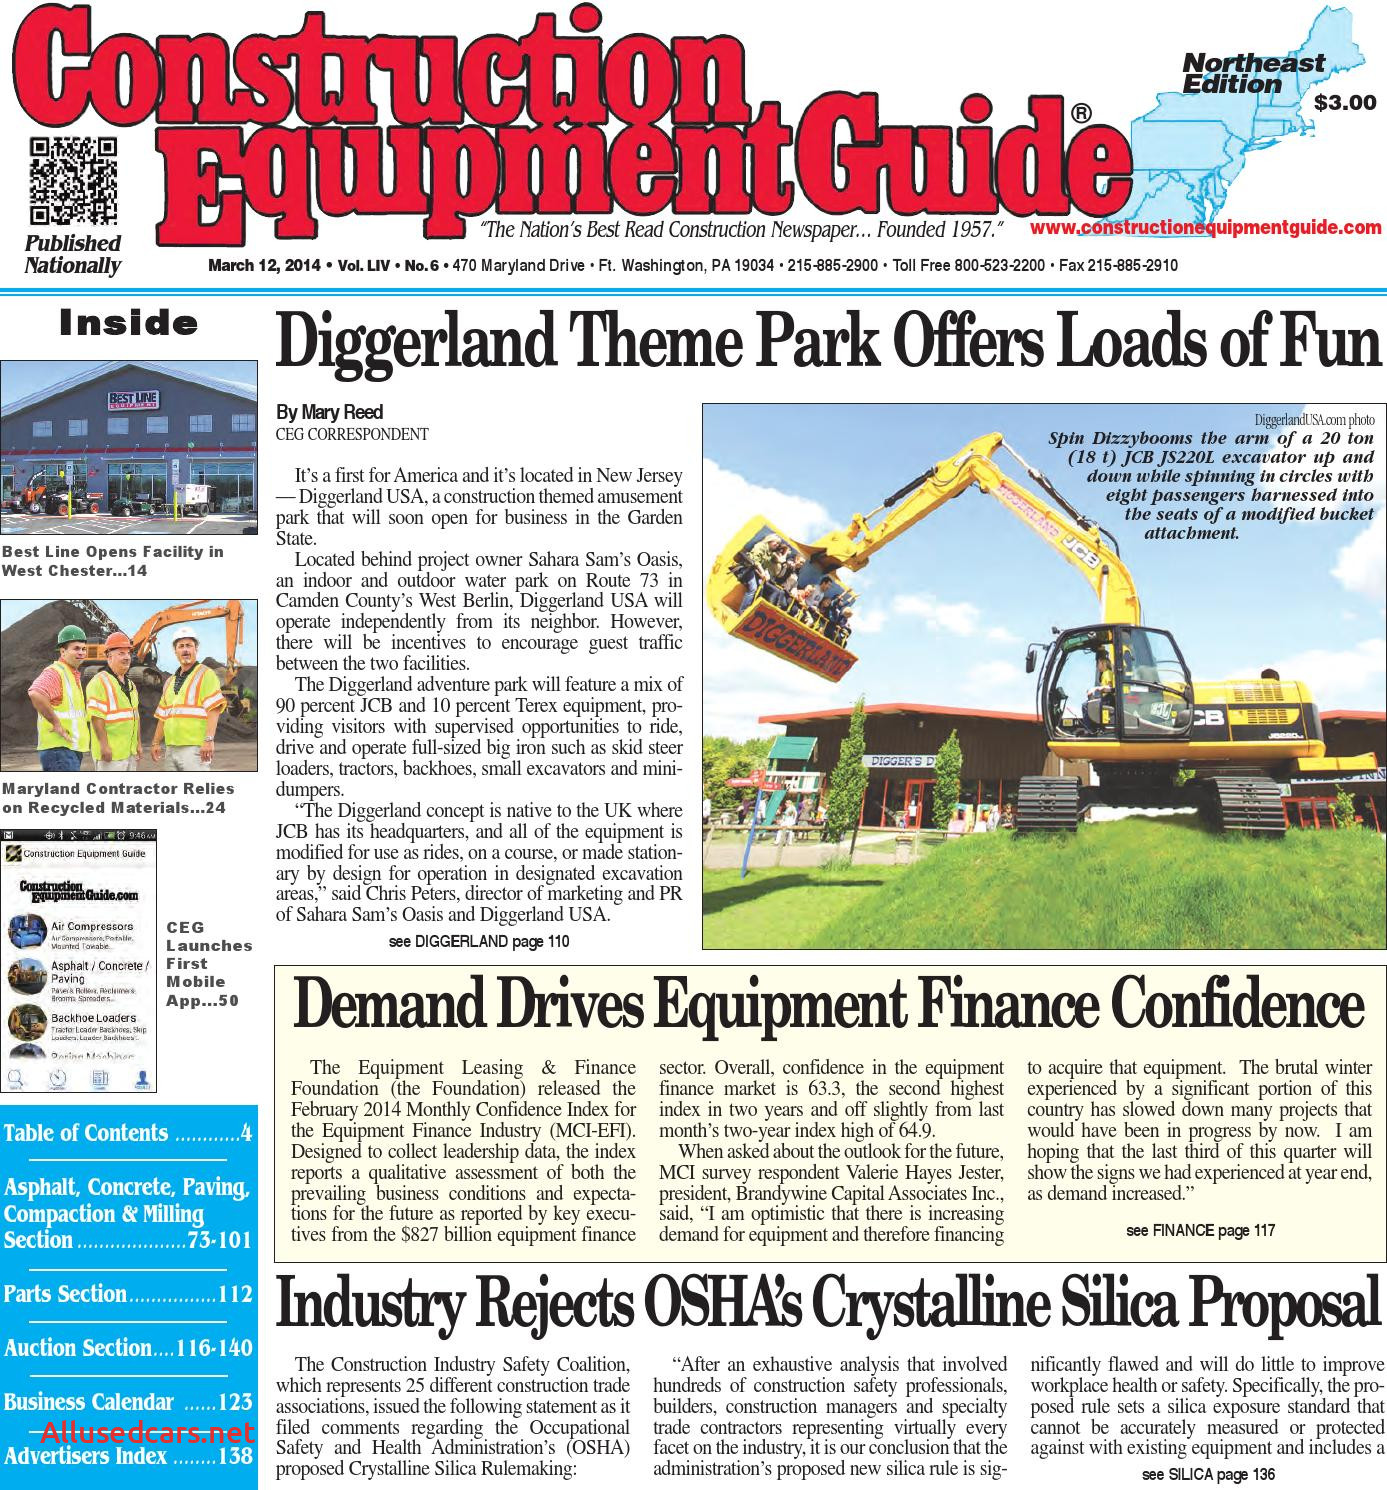 Used Cars for Sale 07882 Elegant northeast 06 2014 by Construction Equipment Guide issuu